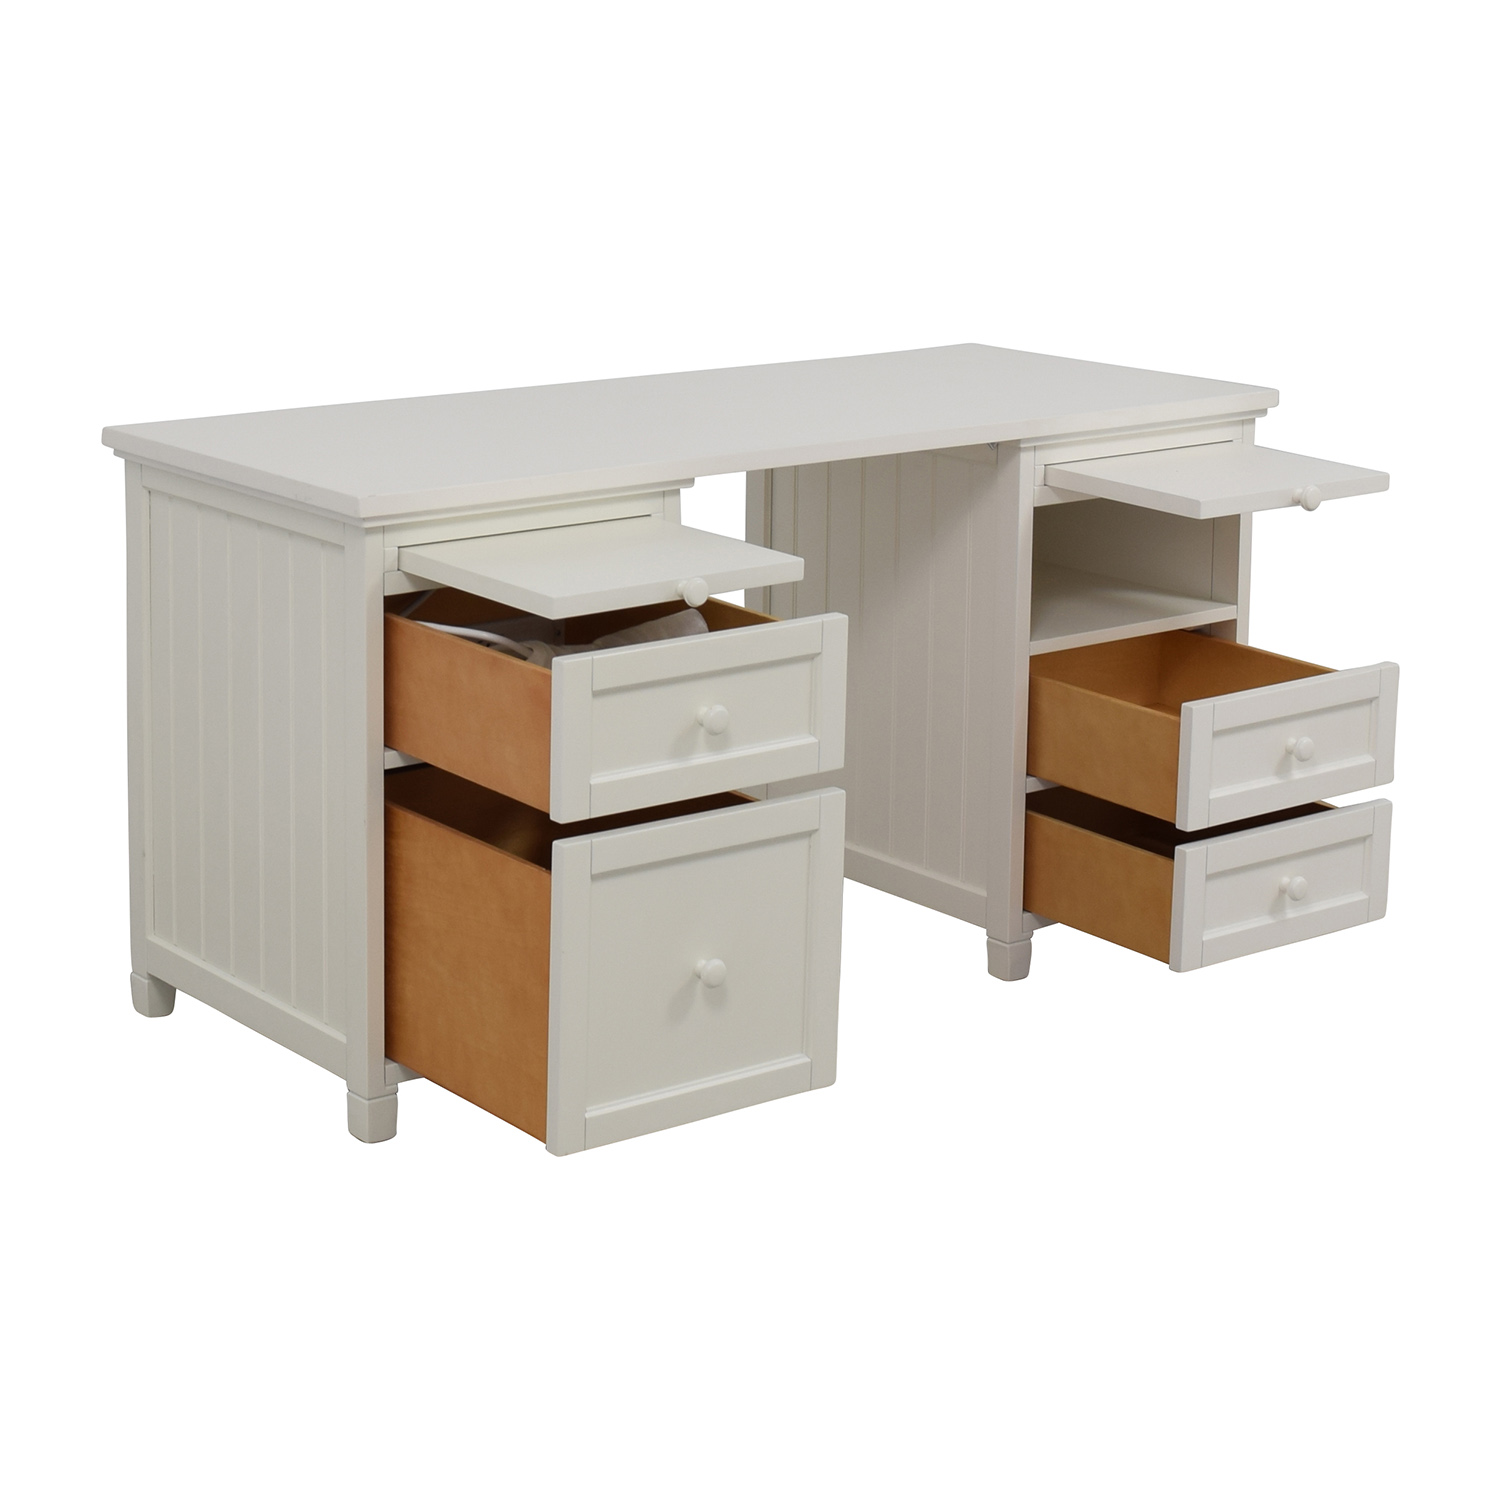 74 off pottery barn pottery barn off white four drawer desk tables - Pottery barn office desk ...